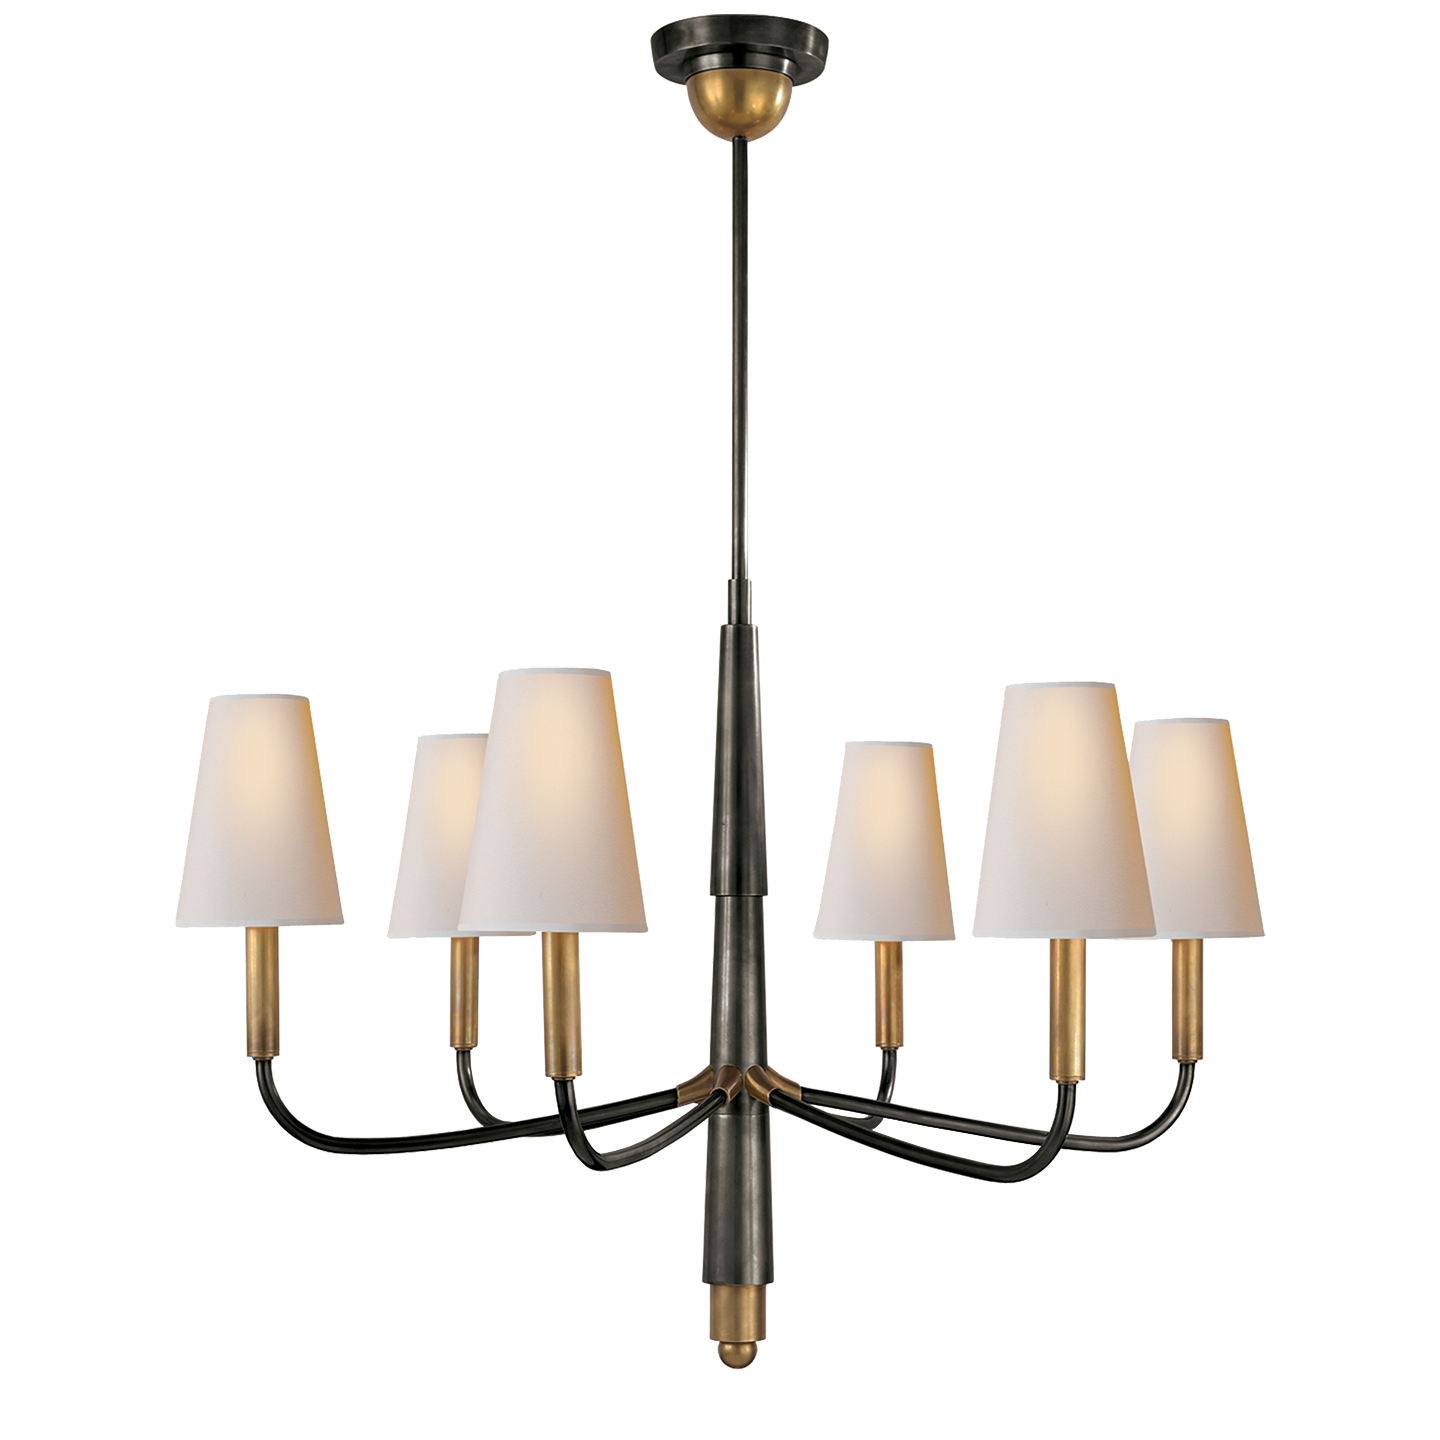 Visual Comfort offers something for every taste and has exceptional quality and timeless style. It's my go-to lighting brand!